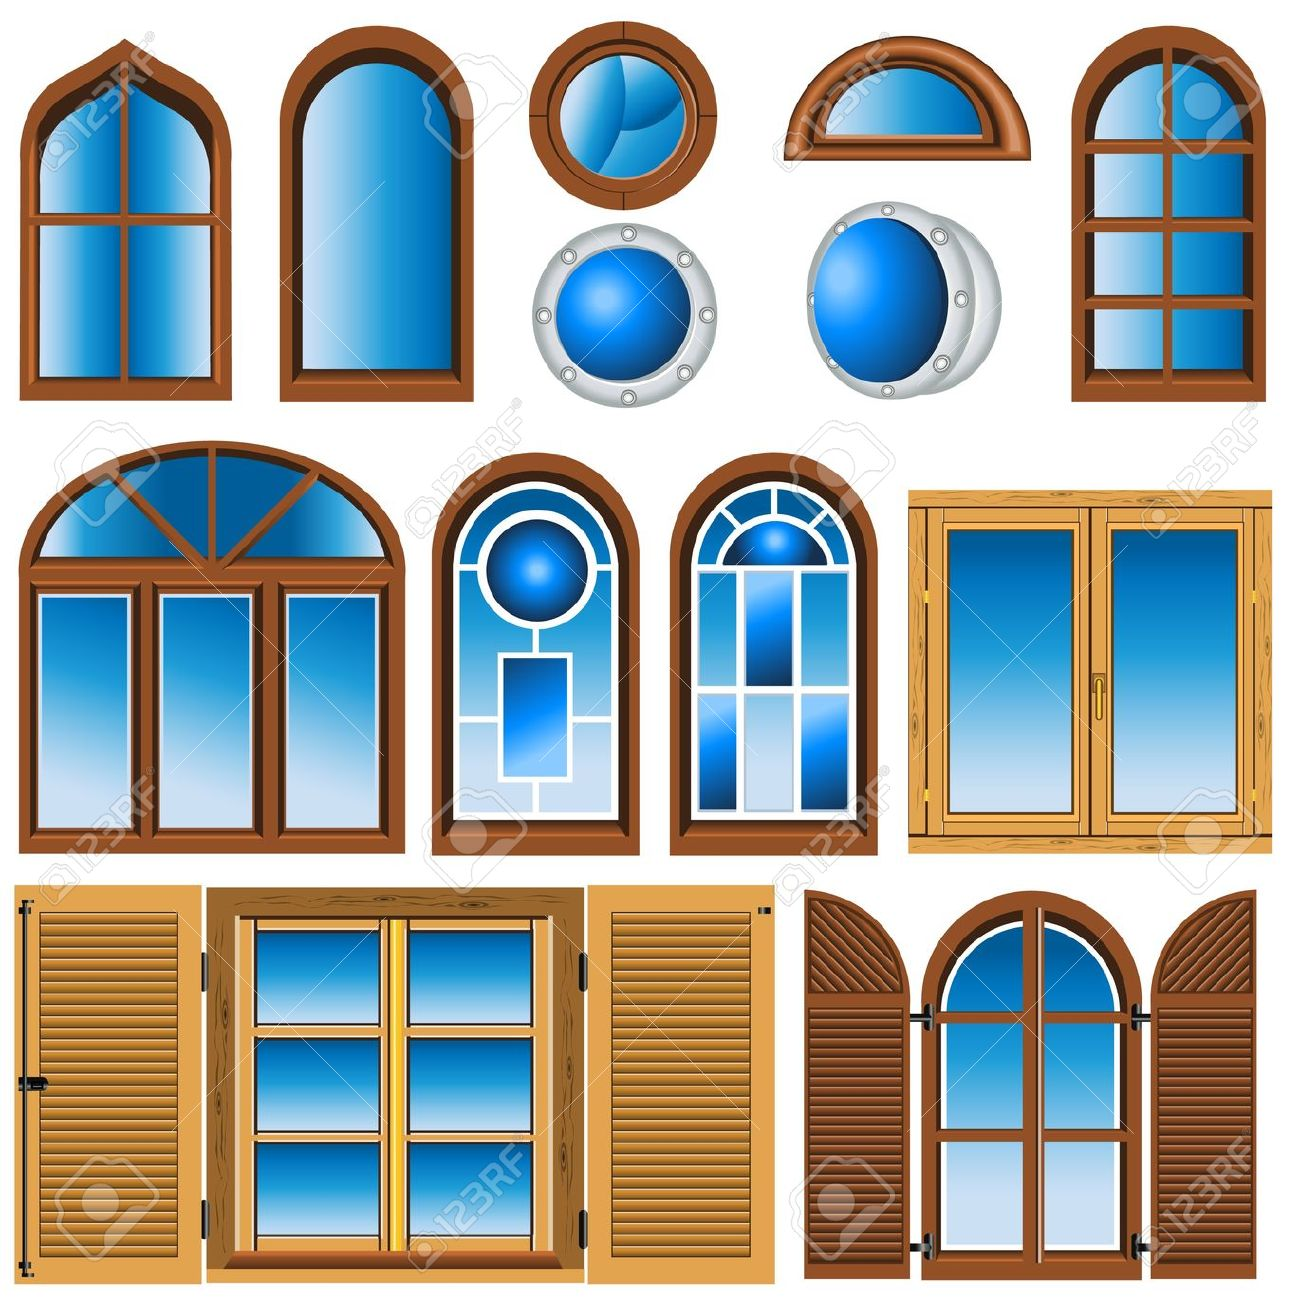 House Windows Clip Art.